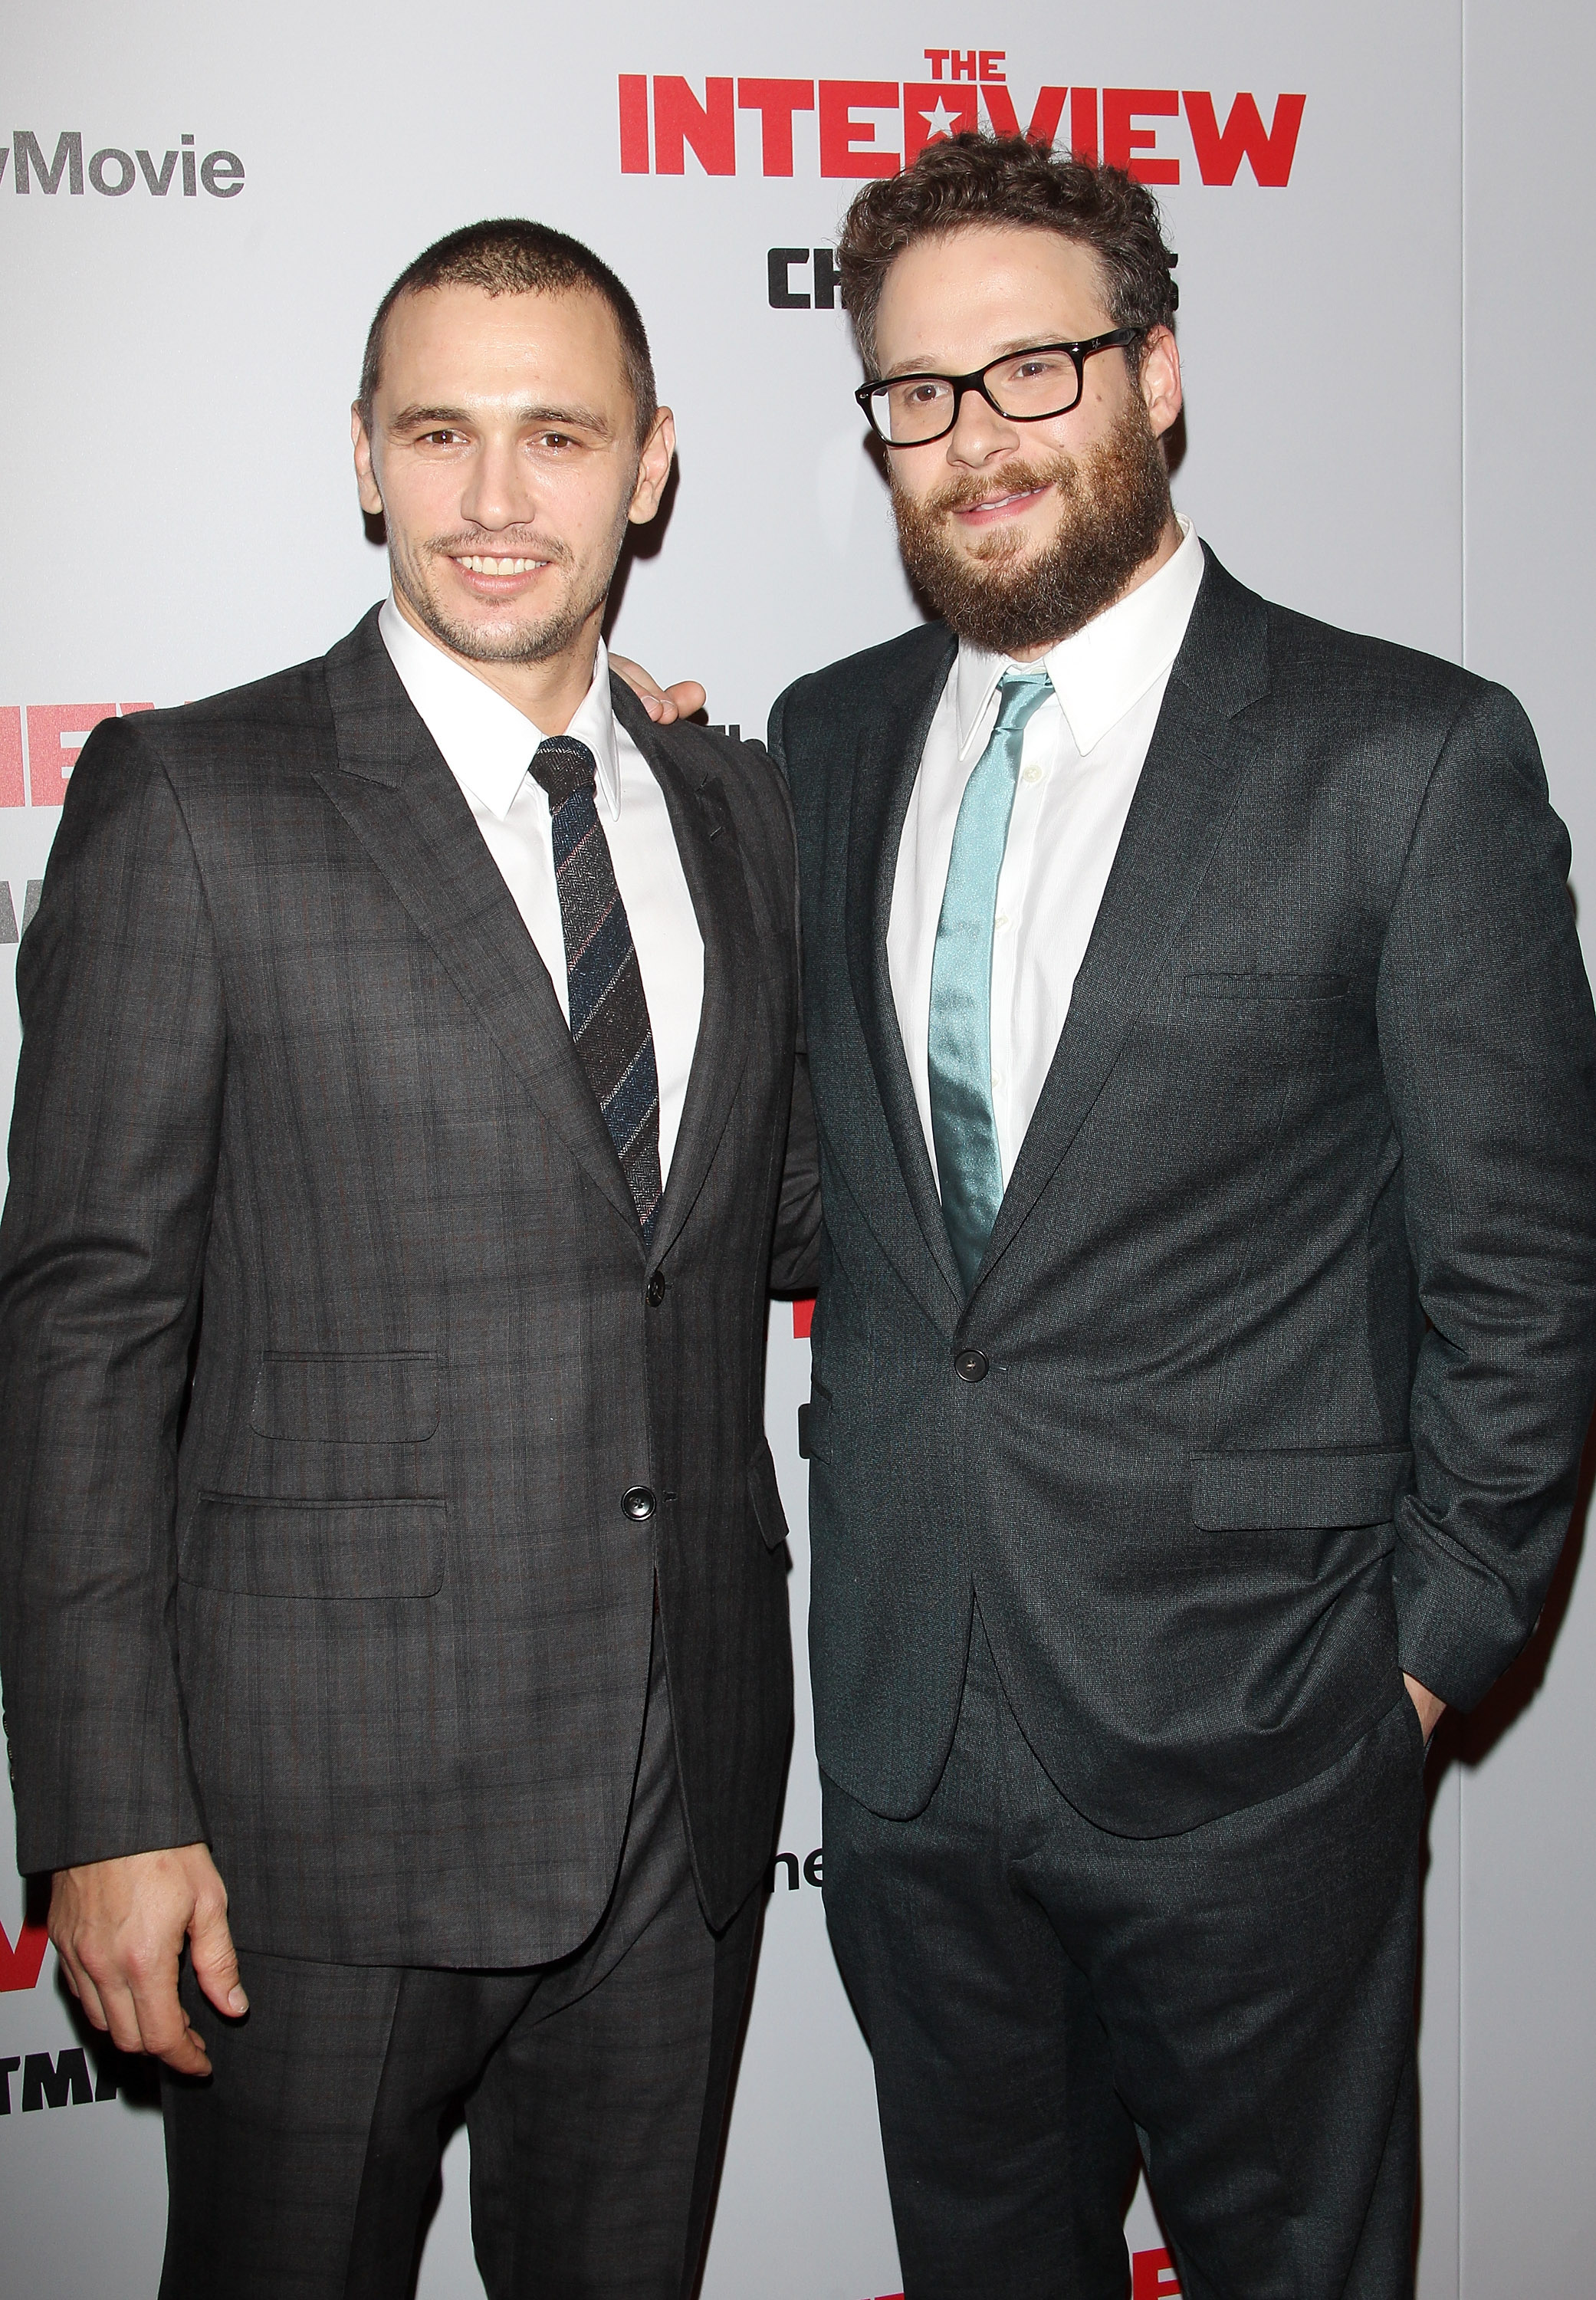 James Franco and Seth Rogen at the Los Angeles premiere of  The Interview  on December 11, 2014.